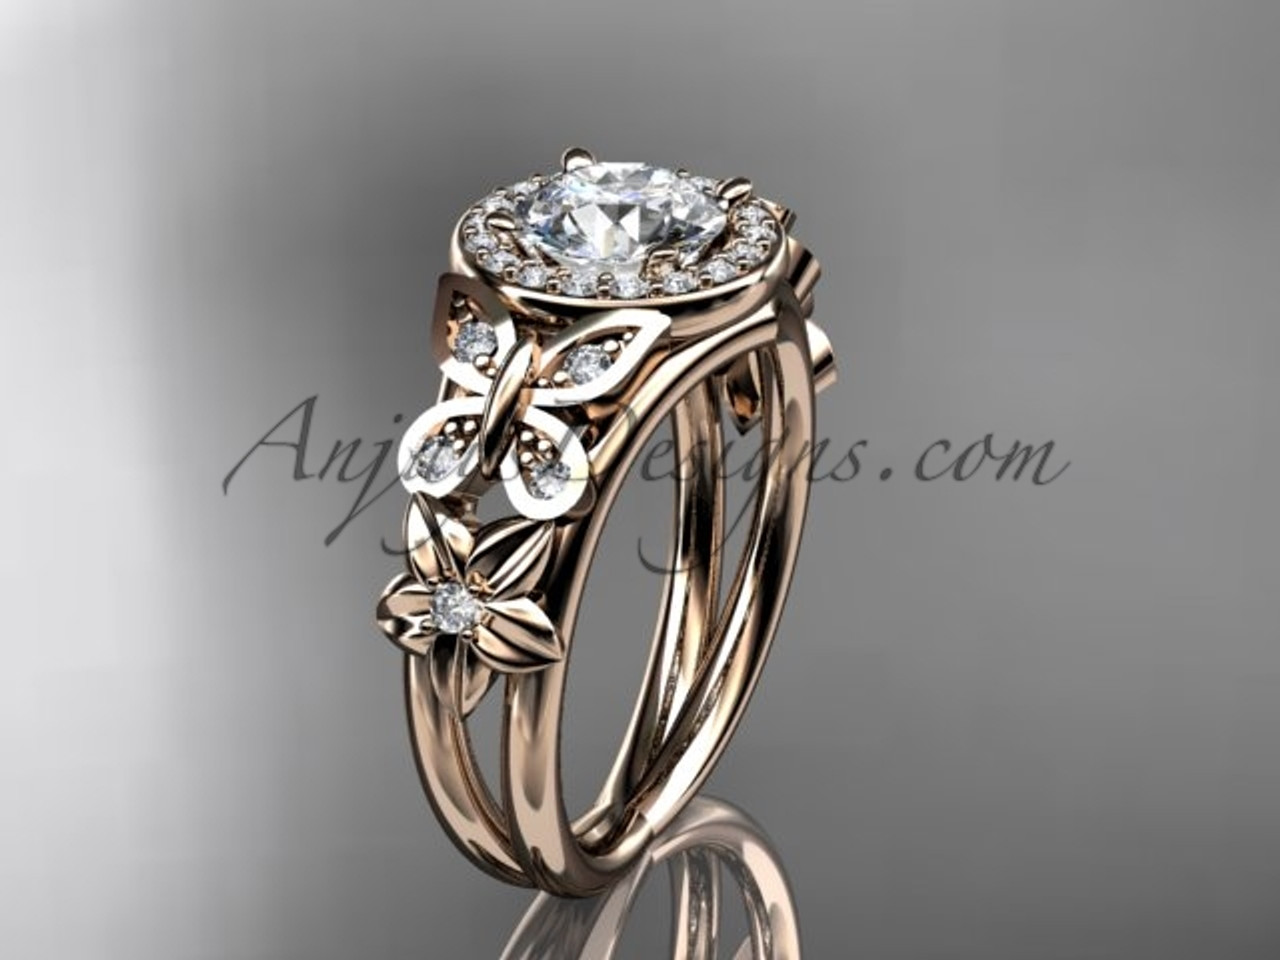 35a99c48eb8df Unique engagement rings 14kt rose gold diamond floral butterfly wedding  ring ADLR524